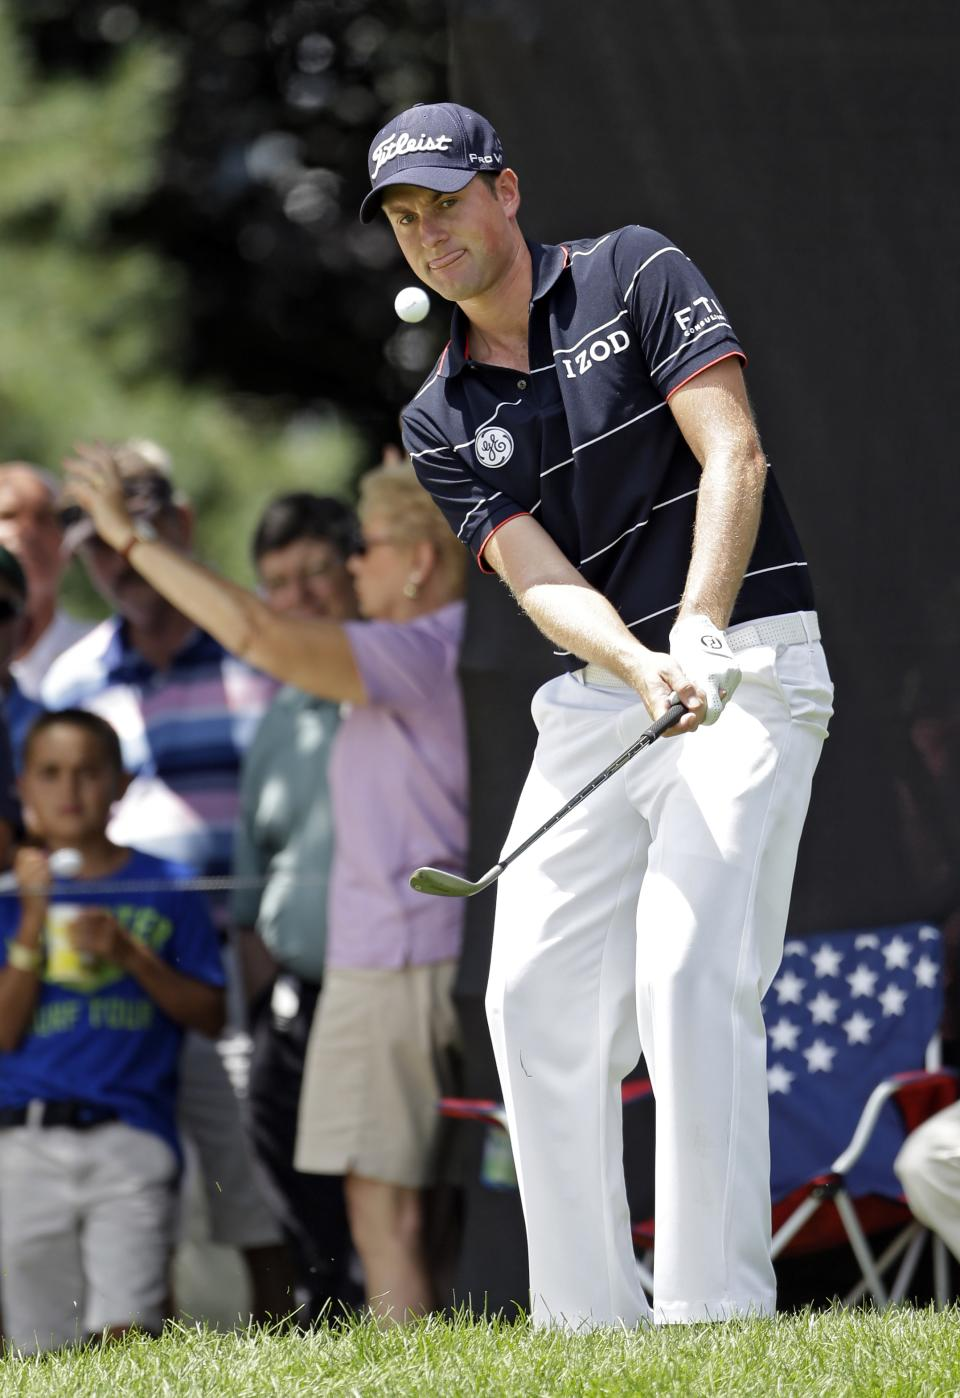 Webb Simpson chips to the ninth green during the first round of the Bridgestone Invitational golf tournament Thursday, Aug. 1, 2013 at Firestone Country Club in Akron, Ohio. Simpson finished his round at 6-under par. (AP Photo/Mark Duncan)